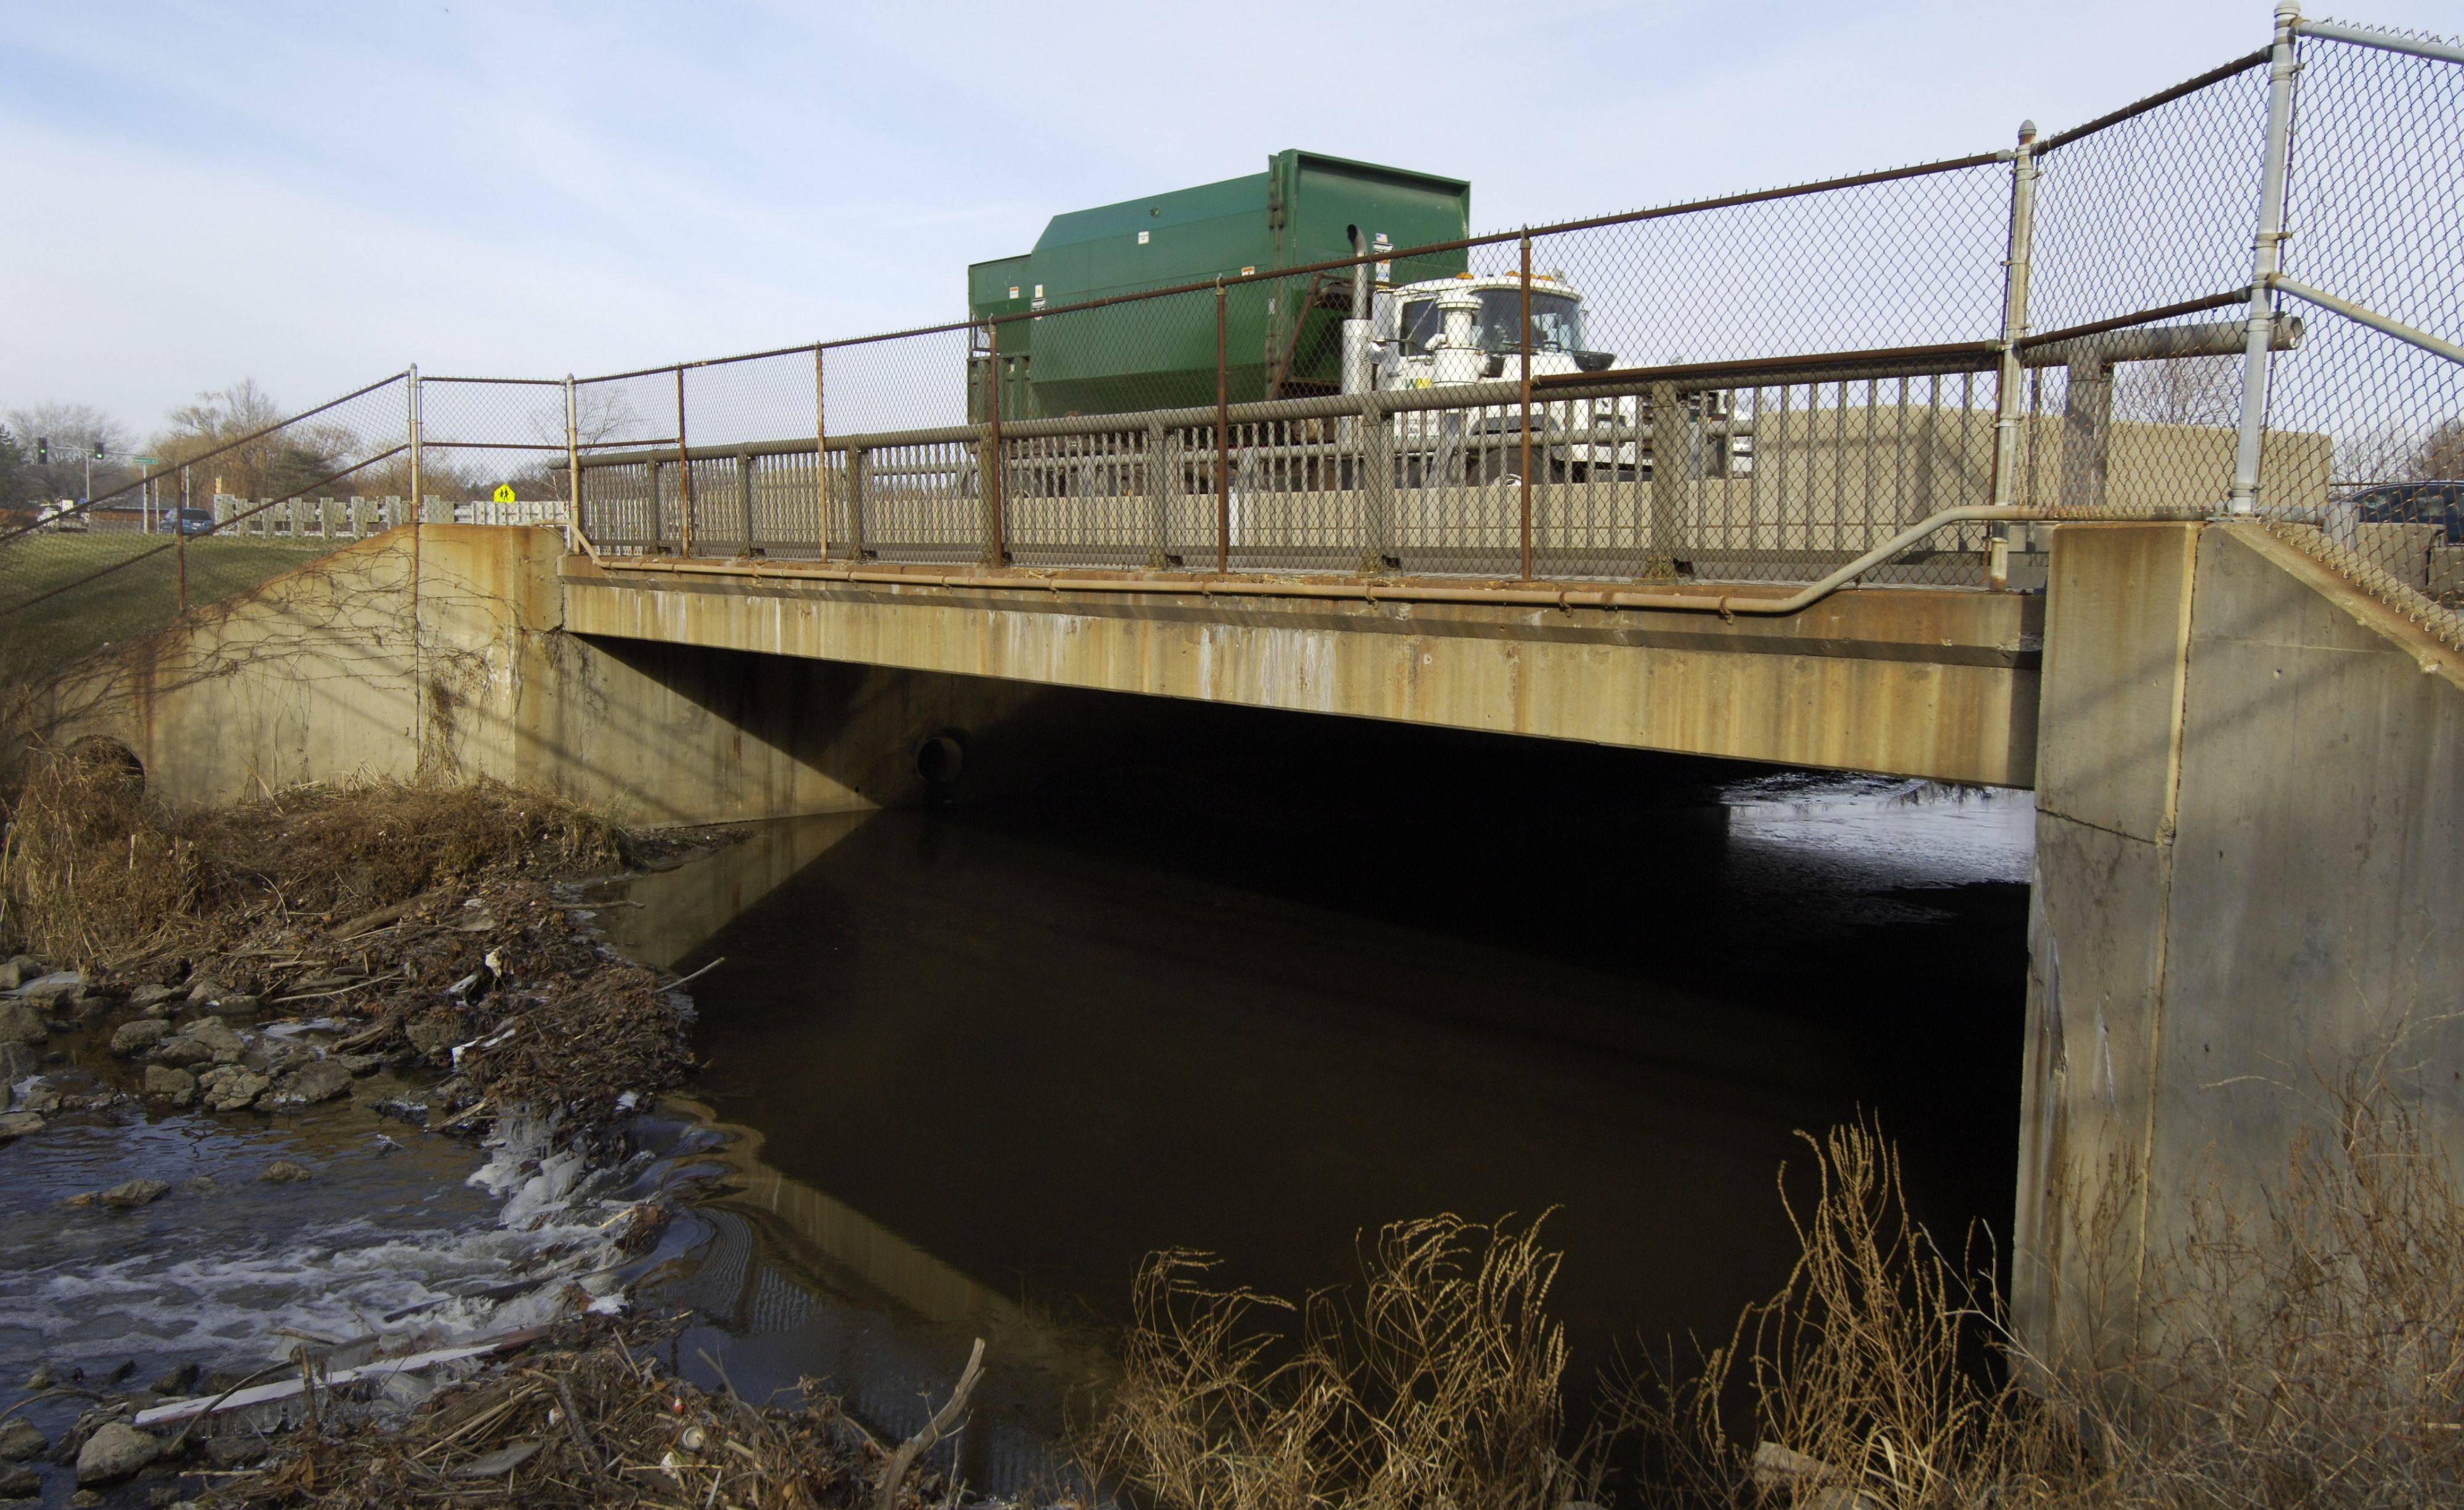 Critically deficient bridge in Rolling Meadows getting fixed